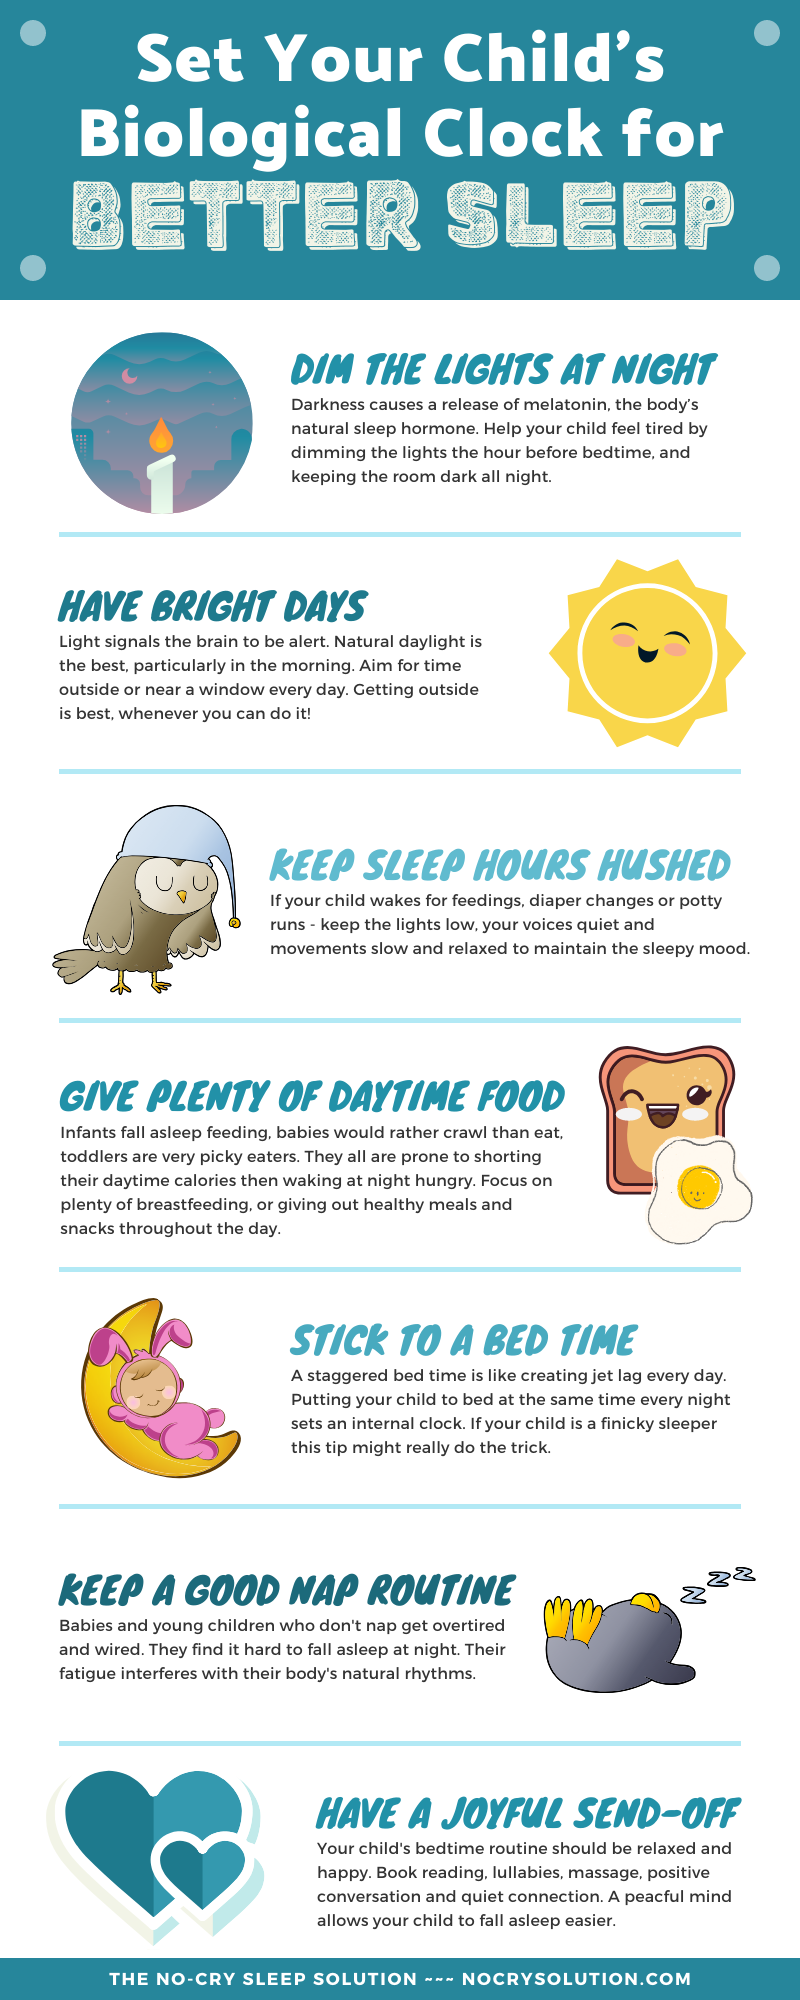 7 Great Ideas for Better Sleep These and other ideas will help your child sleep MUCH better so you can too